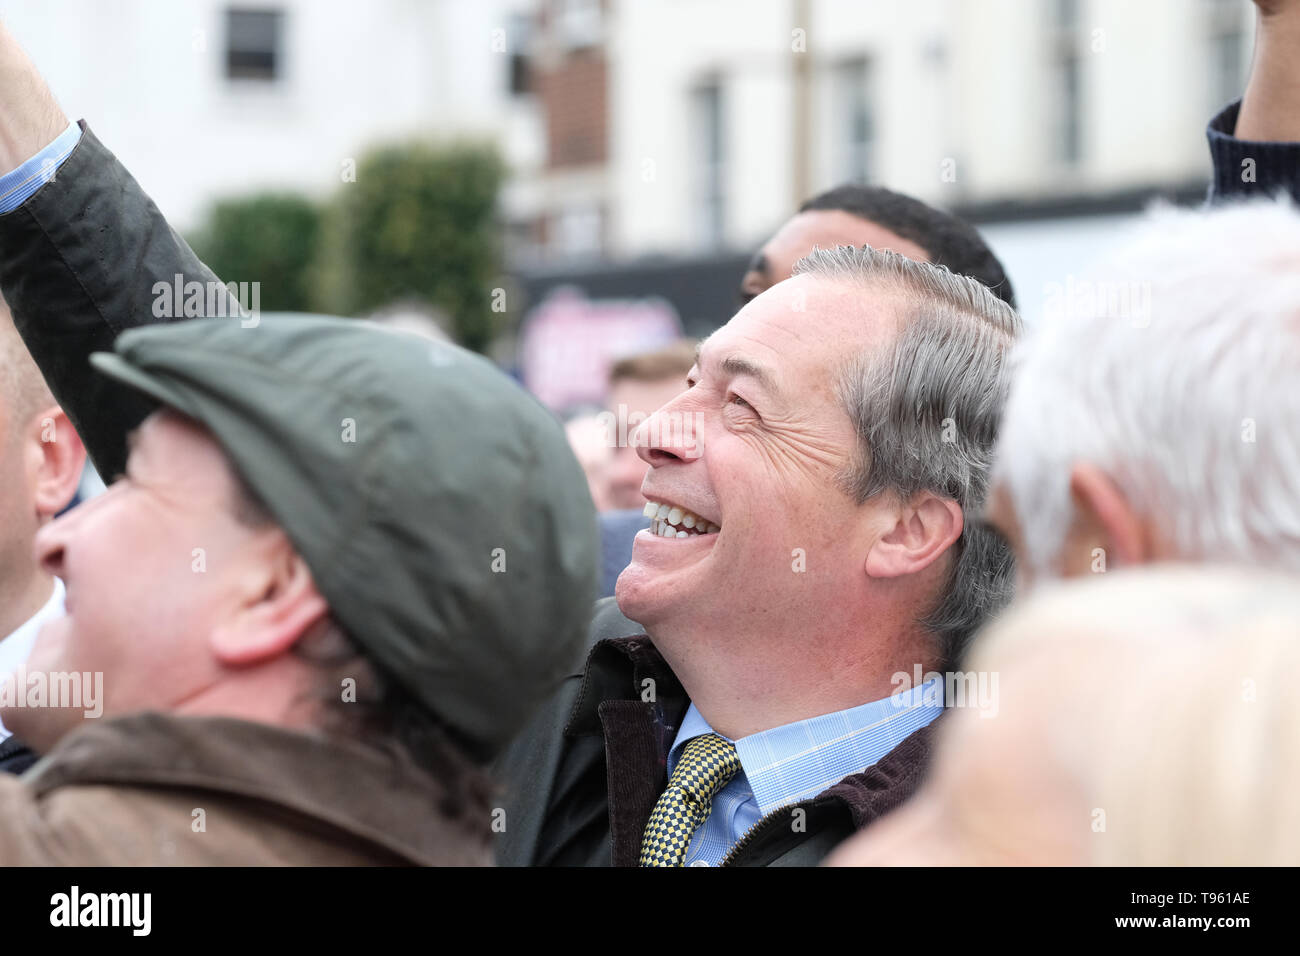 Dudley, West Midlands, England, UK - Friday 17th May 2019 – Nigel Farage meets the public during the Brexit Party tour event at Dudley, West Midlands ahead of next weeks European Parliament elections – The town of Dudley voted 67% in favour of leaving the EU in the 2016 referendum. Photo Steven May / Alamy Live News Stock Photo